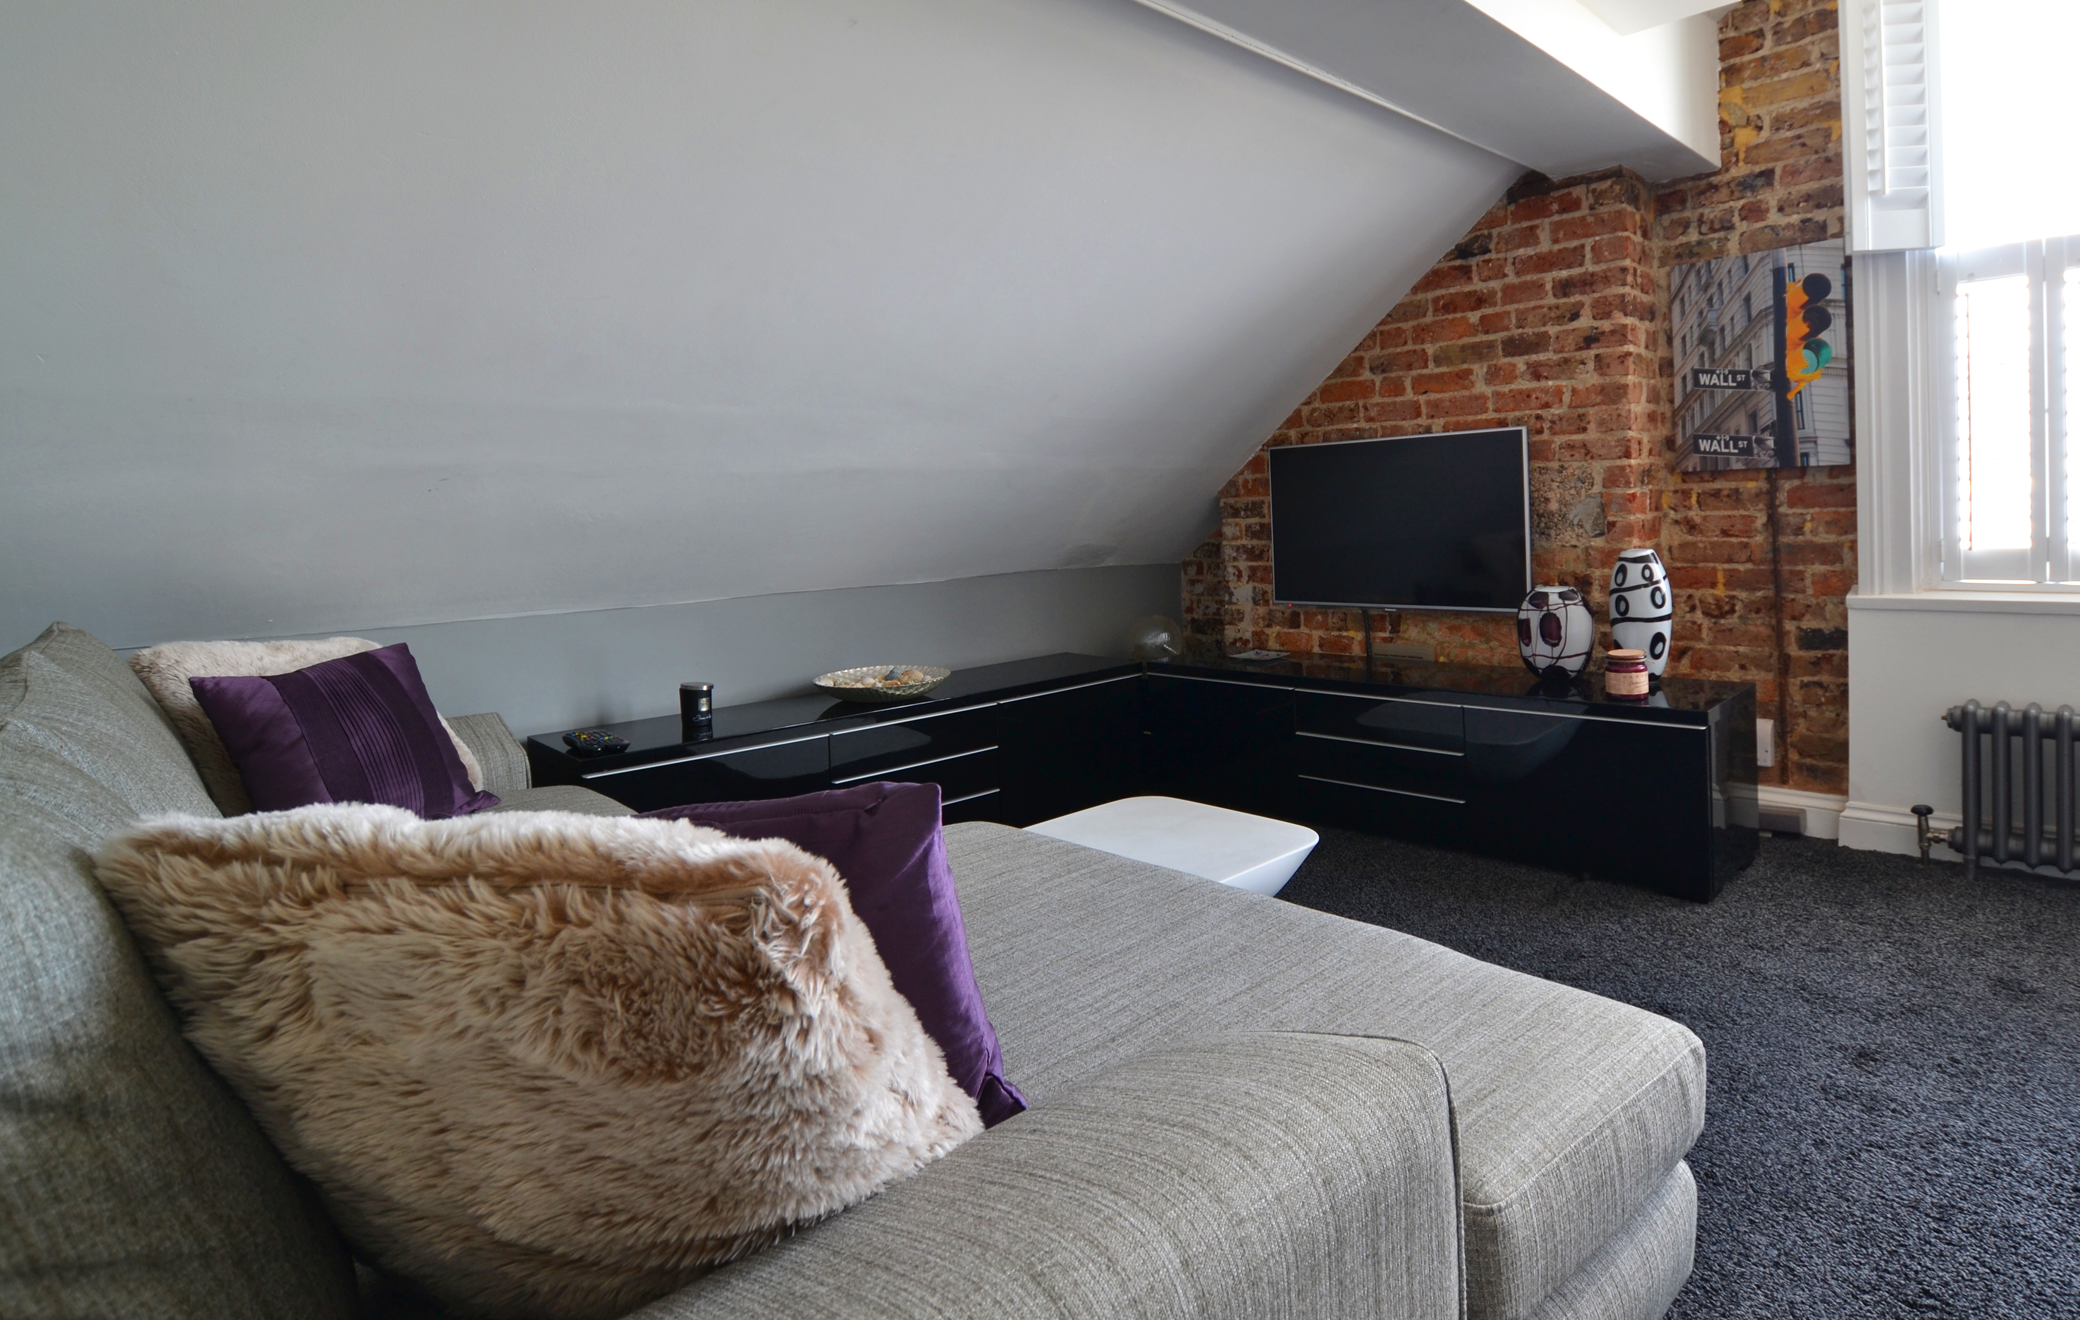 A loft apartment previously let by Parks letting agents in Brighton